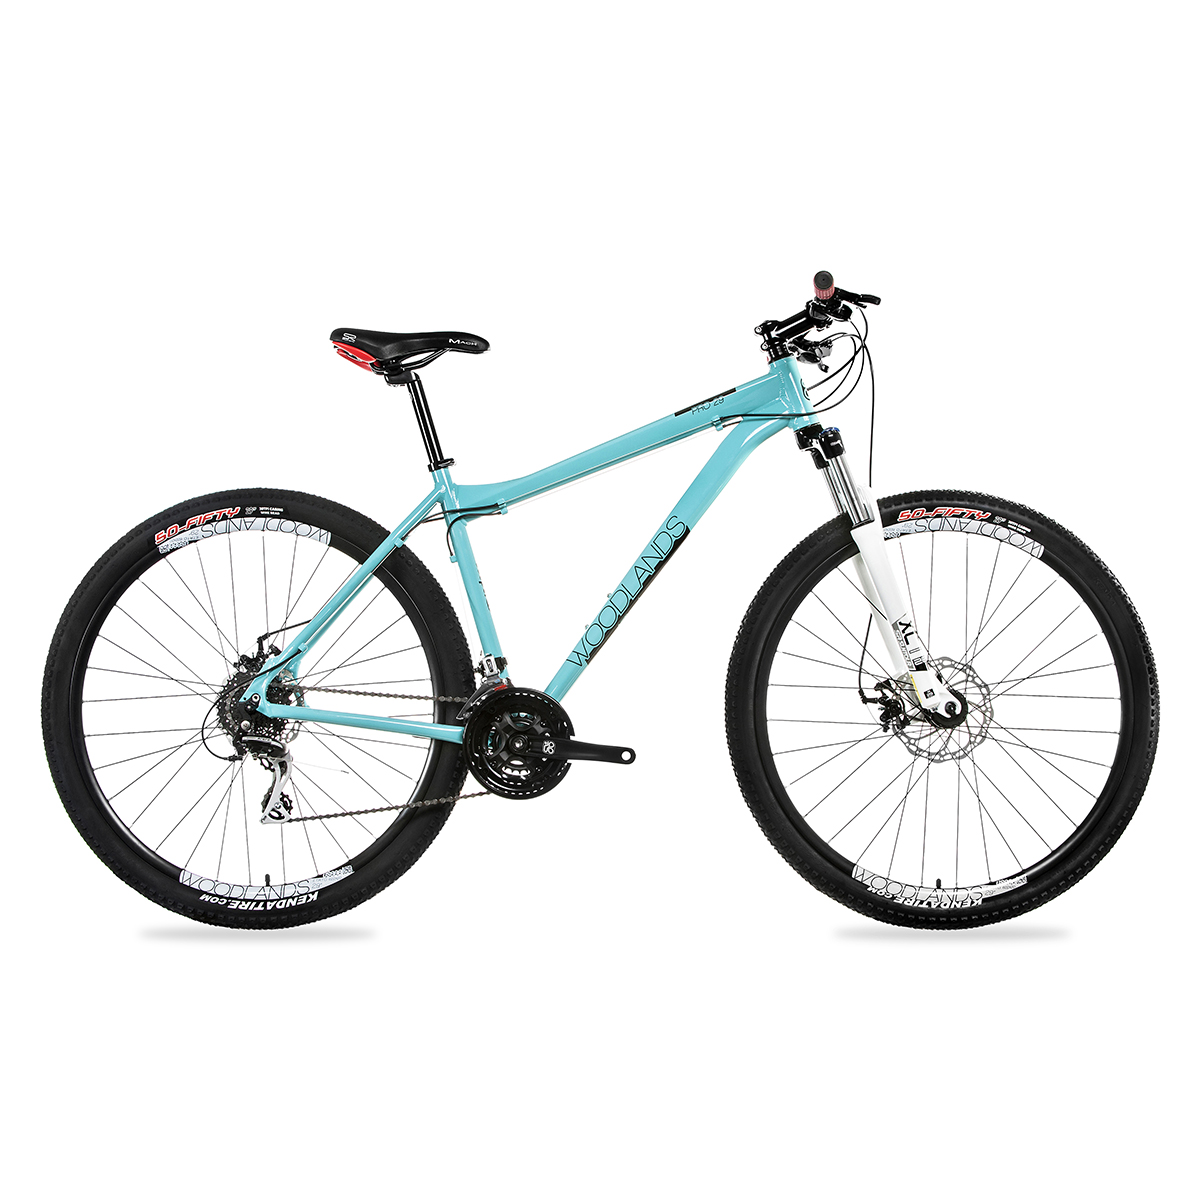 KRP WOODLANDS PRO 29 MTB 2.0 24S SMALL TÜRKIZ